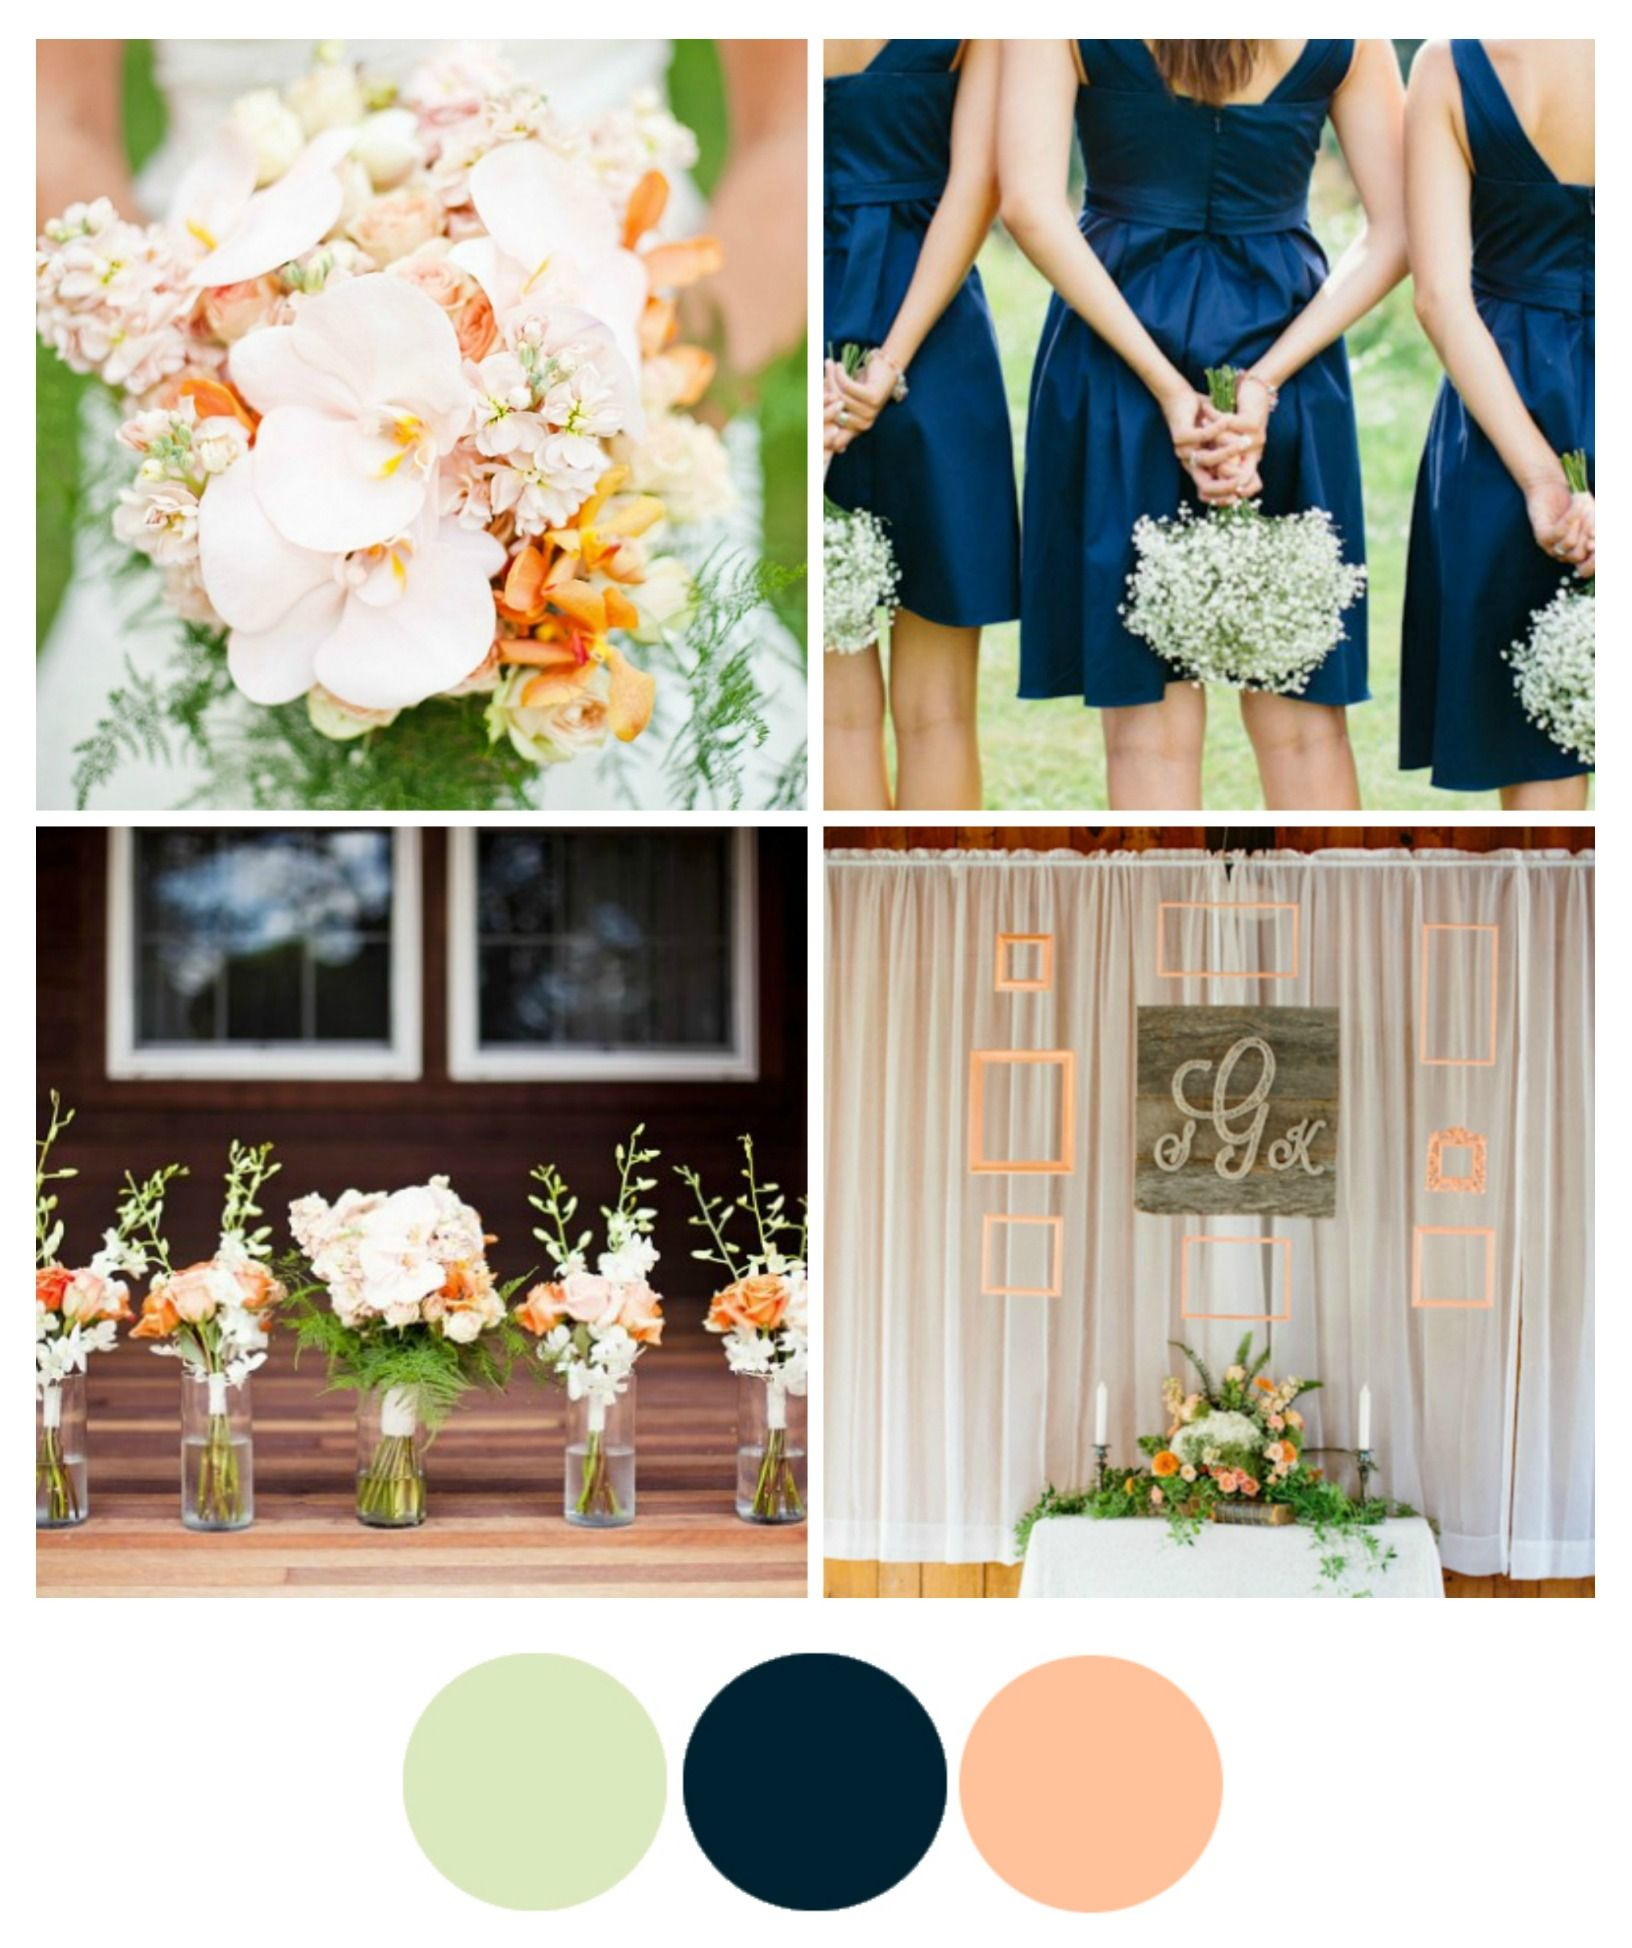 Wedding Color Inspiration Peach And Navy Rustic Wedding Chic Navy Wedding Theme Wedding Colors Wedding Color Inspiration